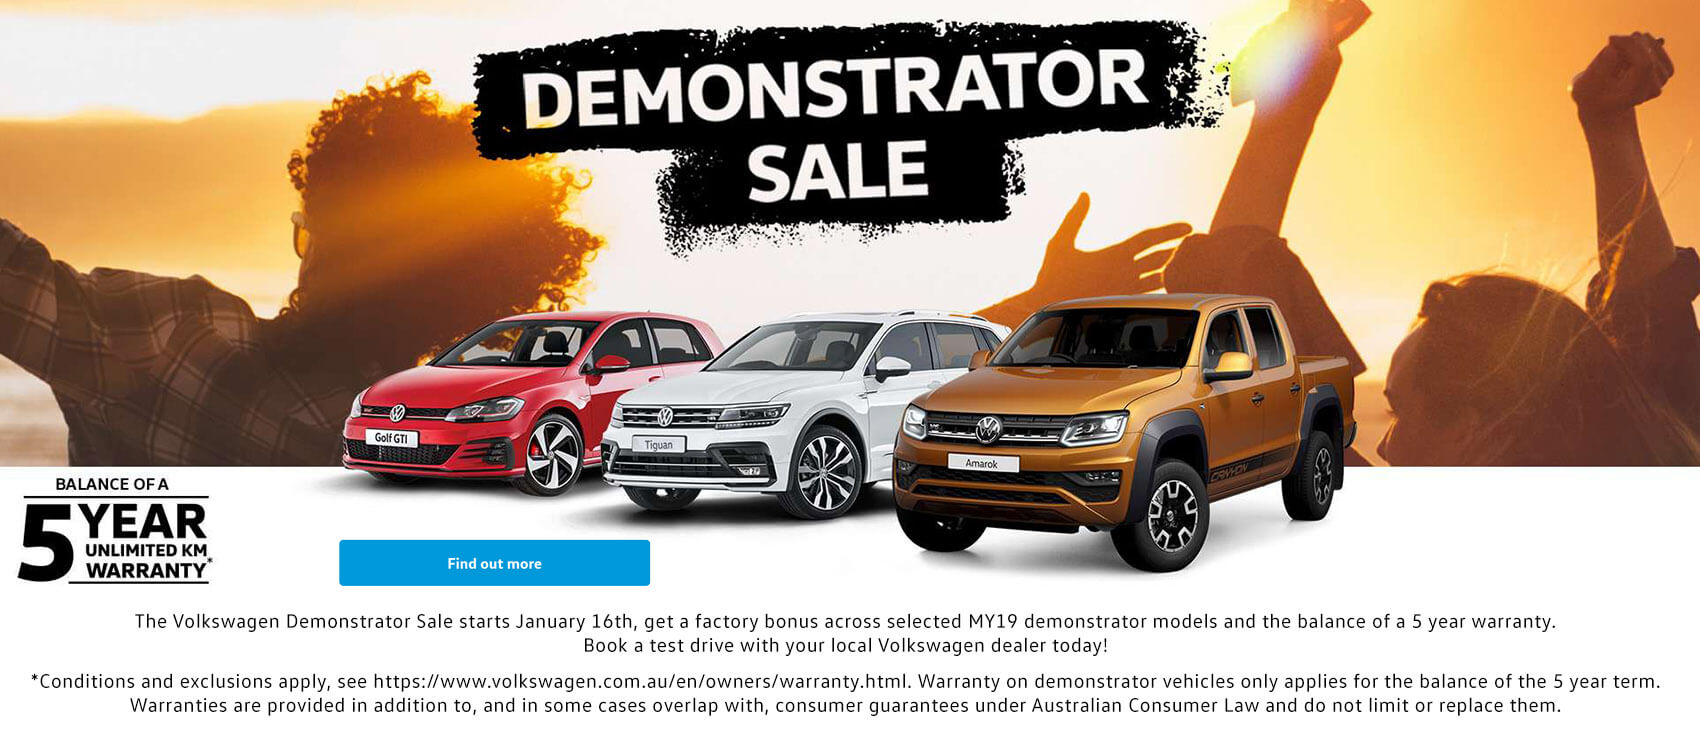 The Volkswagen Demonstrator Sale starts January 16th, get a factory bonus across selected MY19 demonstrator models and the balance of a 5 year warranty. Book a test drive with Tweed Volkswagen